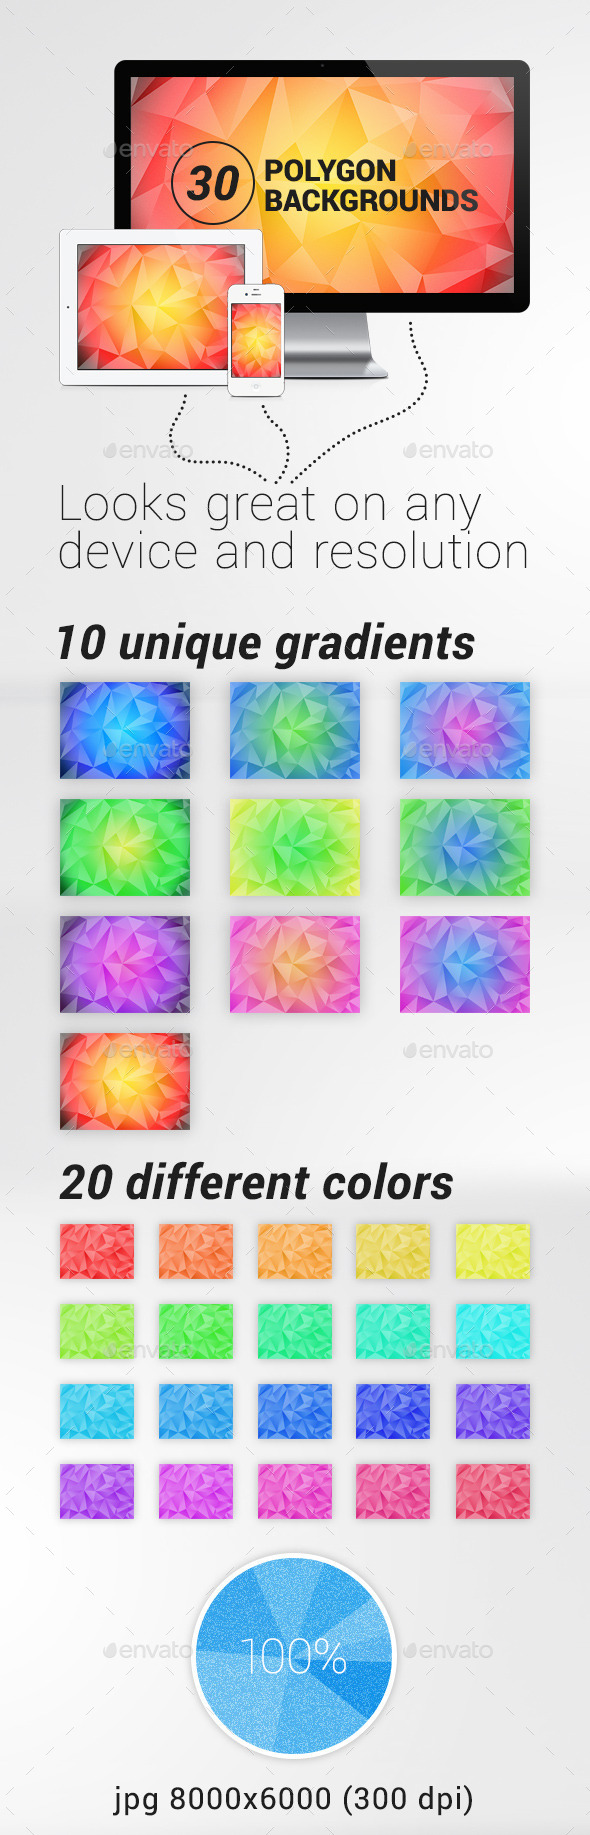 30 Polygon Backgrounds - Abstract Backgrounds